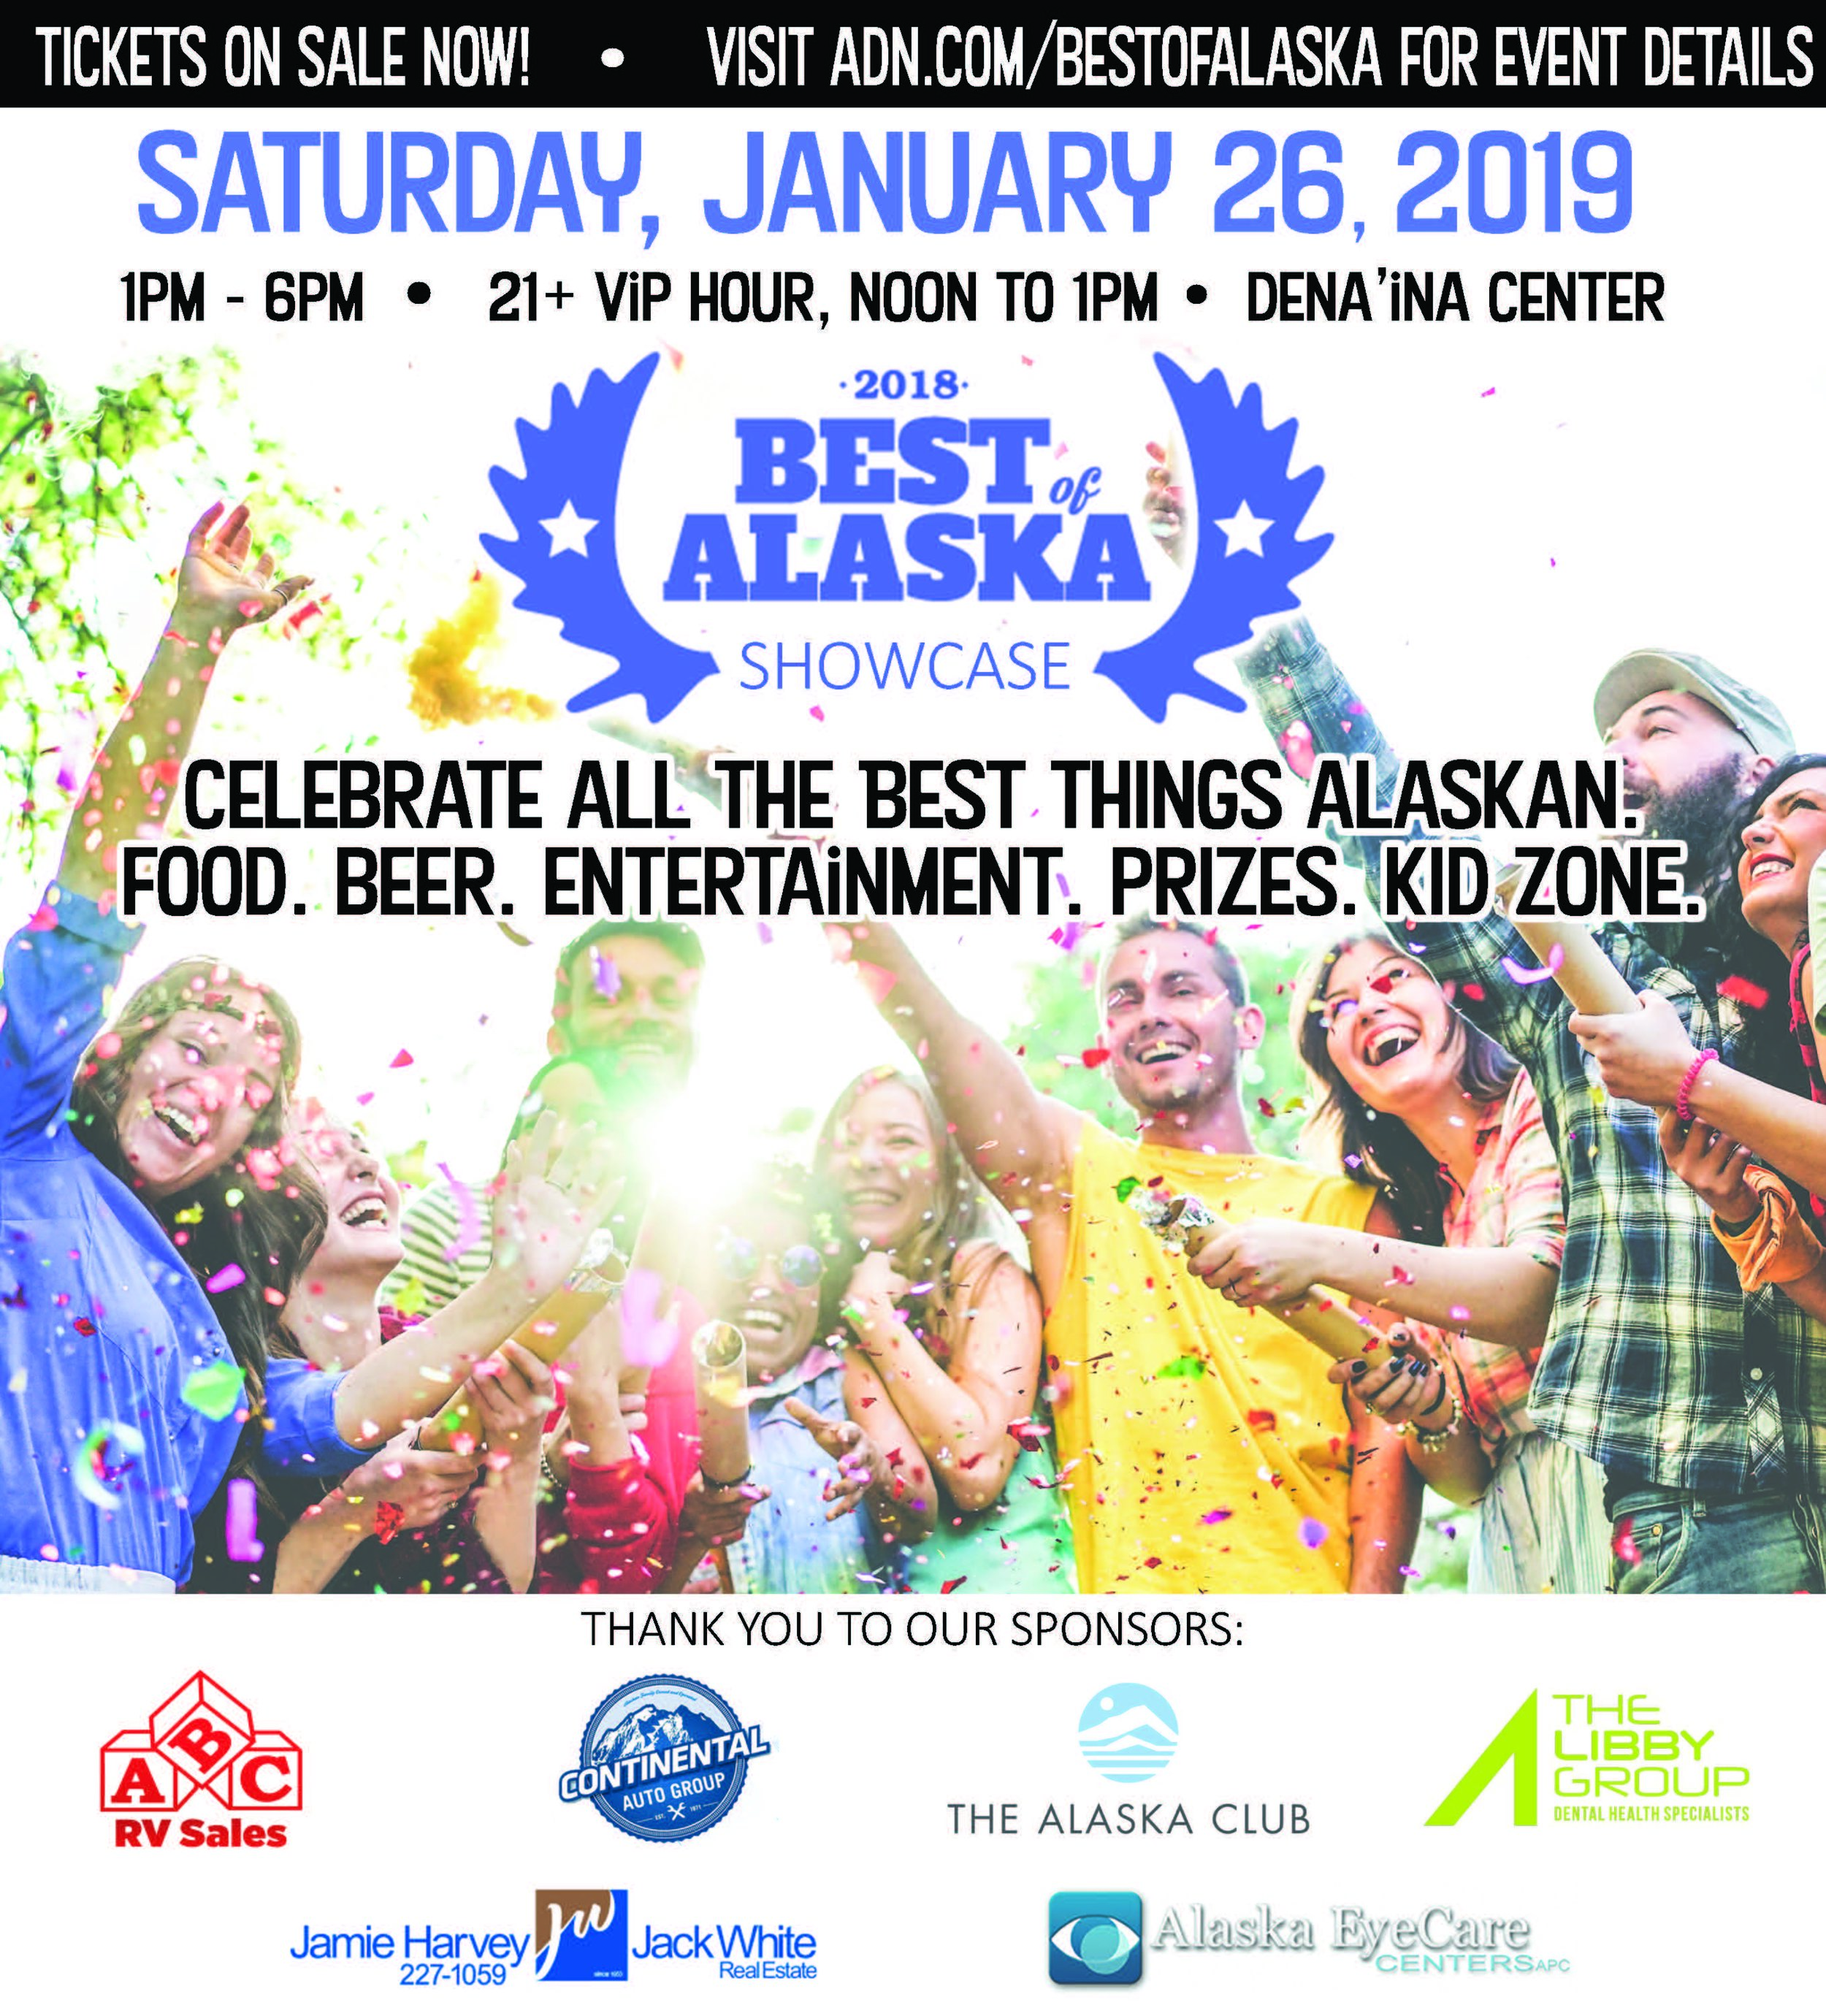 Best of Alaska Showcase - 2018 Special Section Ad.jpg